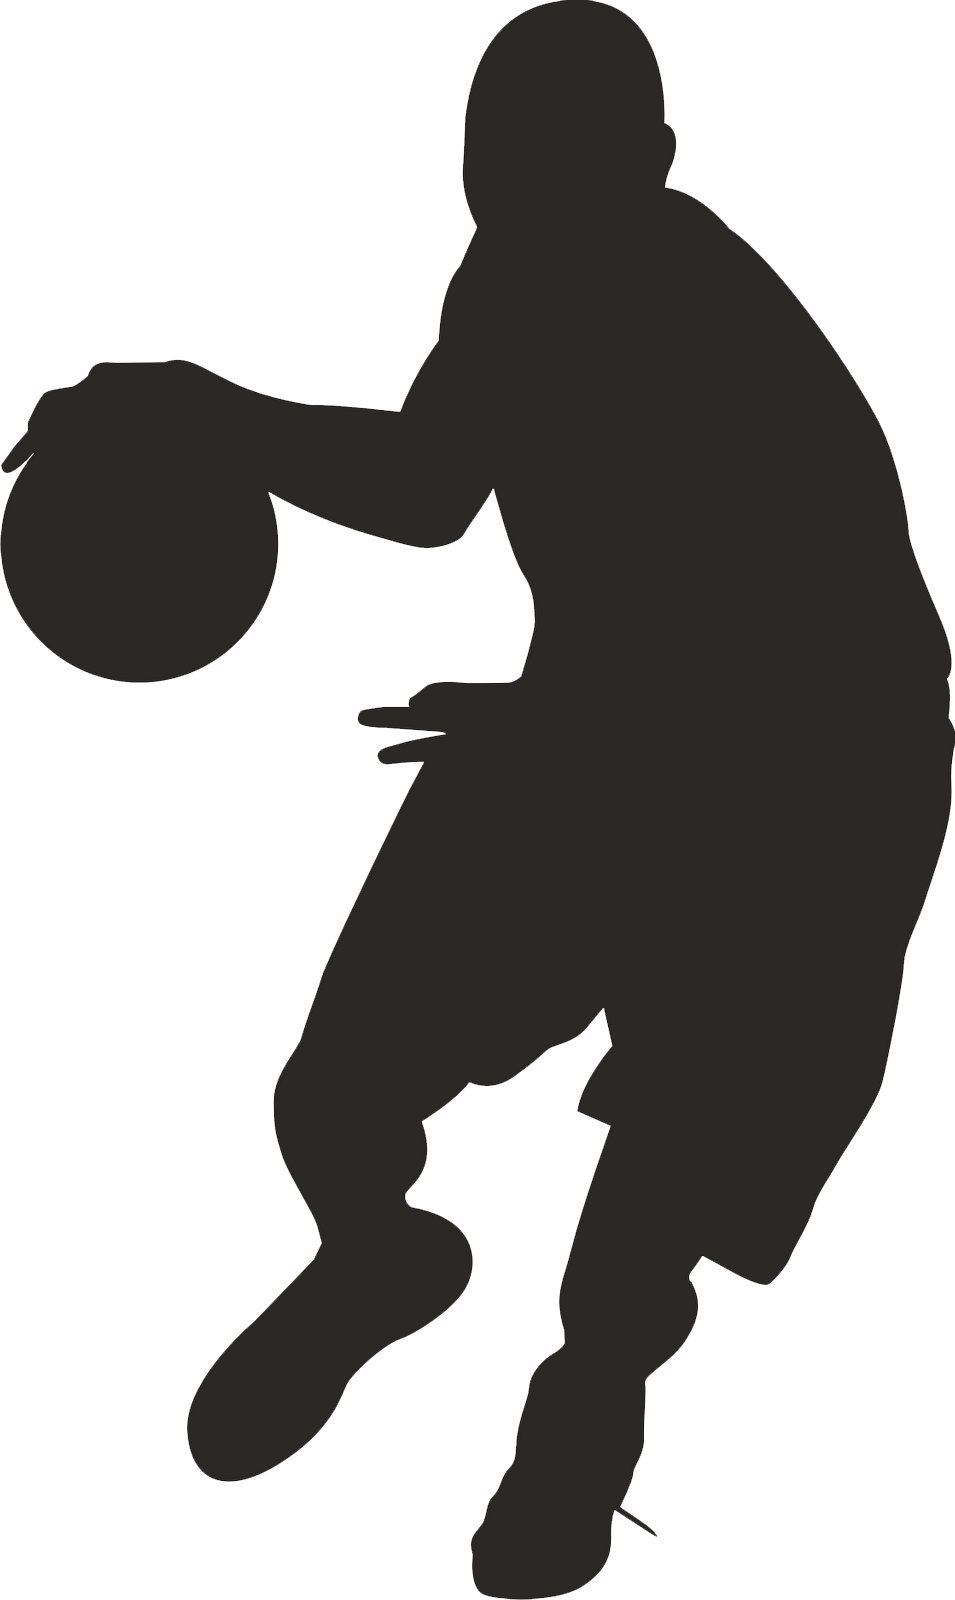 Basketball team free clipart graphic transparent Silhouette Basketball Players at GetDrawings.com | Free for personal ... graphic transparent